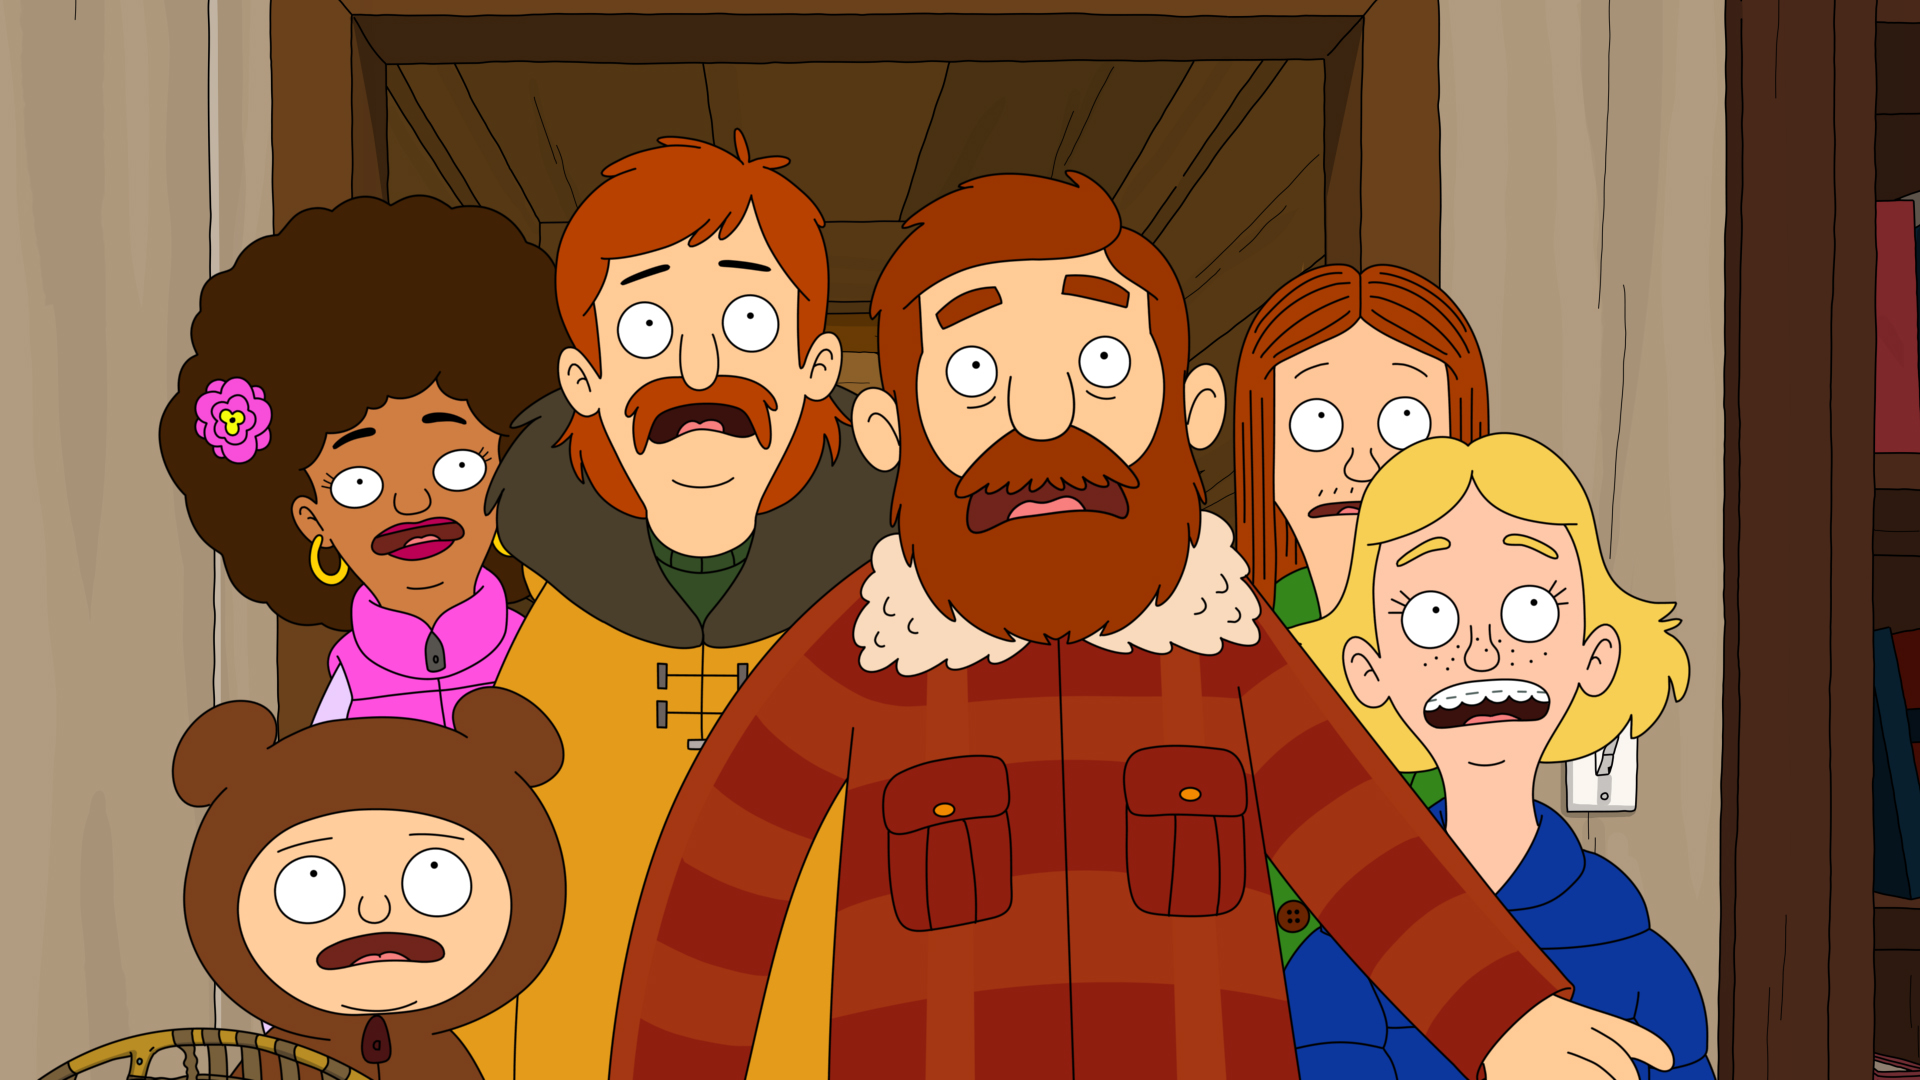 """THE GREAT NORTH: A new animated comedy that follows the Alaskan adventures of the Tobin family, as a single dad does his best to keep his bunch of kids close. In the special preview episode, the family's plans to celebrate Judy's 16th birthday on the family fishing boat go awry after a moose breaks into the Tobin's home in the """"Sexi Moose"""" special preview episode of THE GREAT NORTH airing Sunday, Jan. 3 (8:31-9:01 PM ET/PT) on FOX. Clockwise from lower left: Moon (Aparna Nancherla), Honey Bee (Dulcé Sloan), Wolf (Will Forte), Beef (Nick Offerman), Ham (Paul Rust) and Judy (Jenny Slate). THE GREAT NORTH © 2021 by Twentieth Century Fox Film Corporation and Fox Media LLC."""